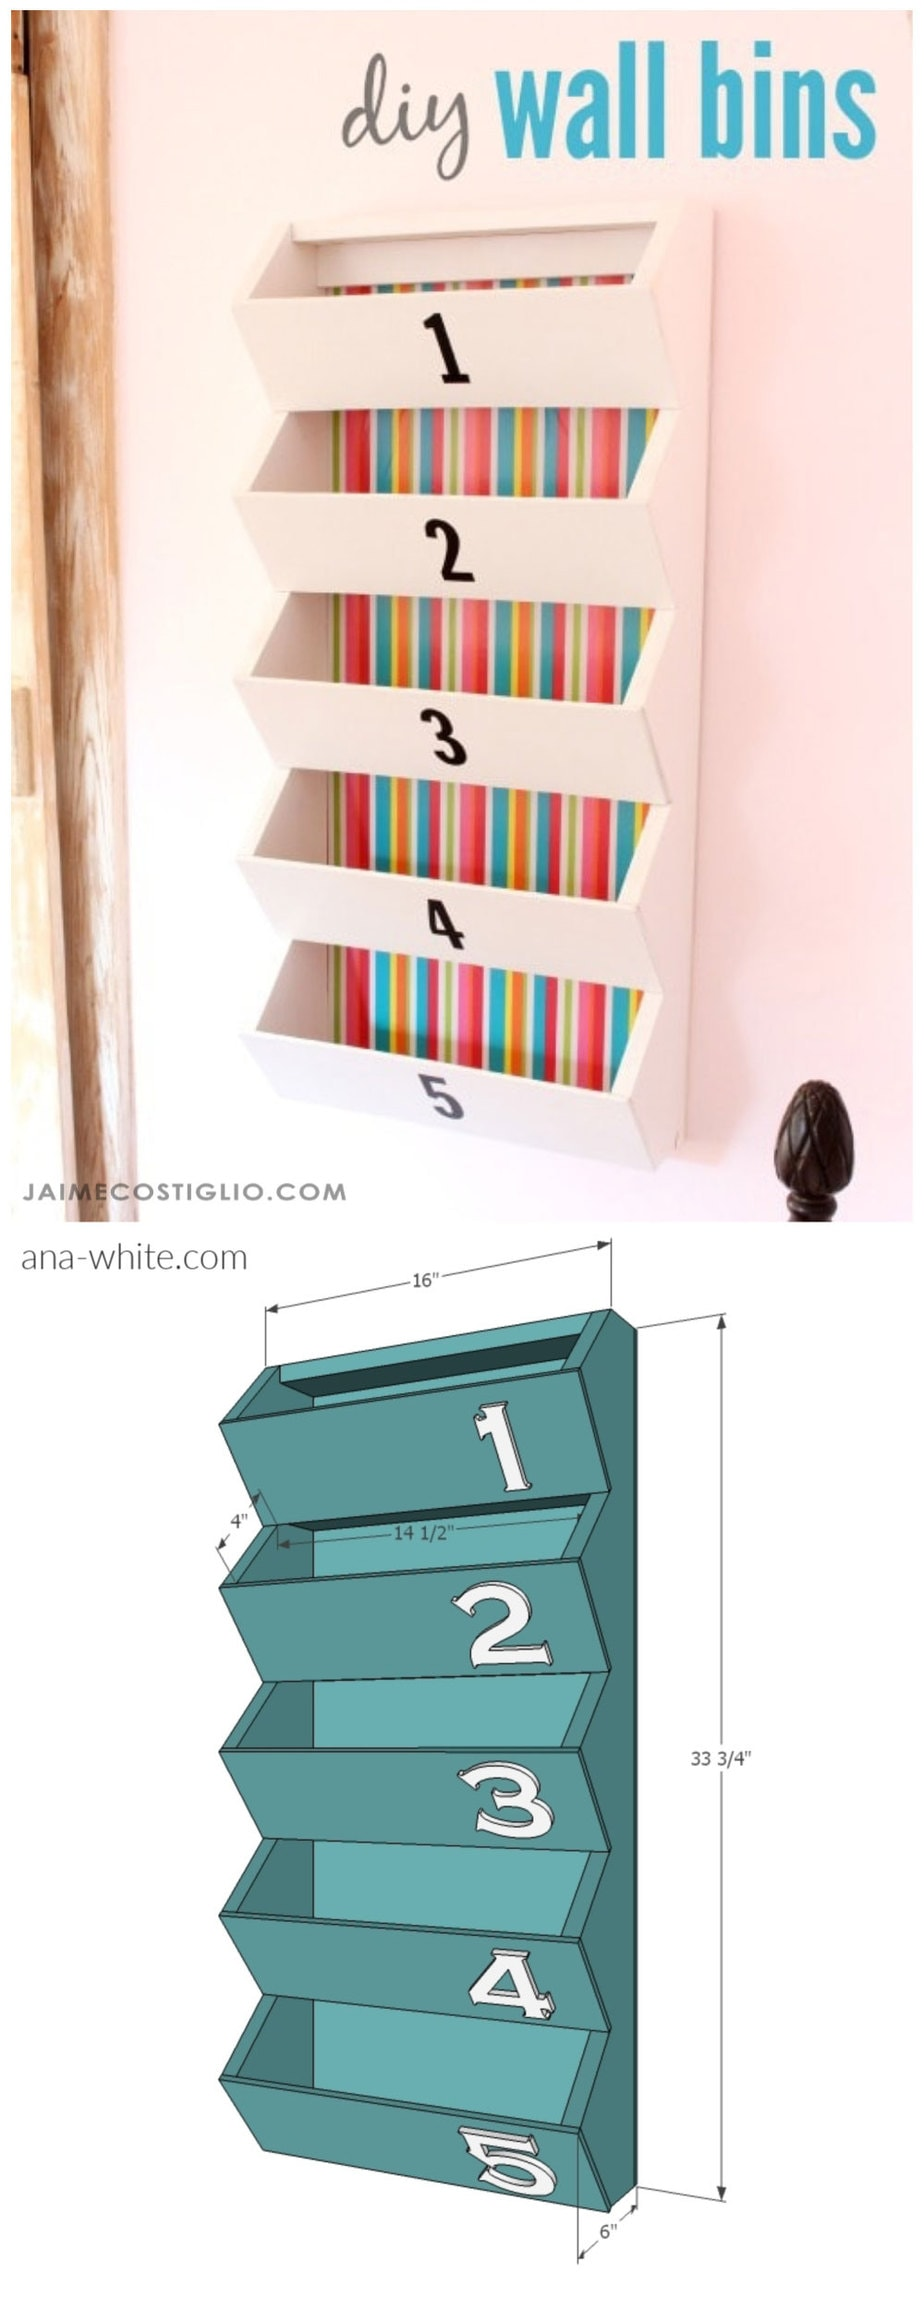 wall bins storage project